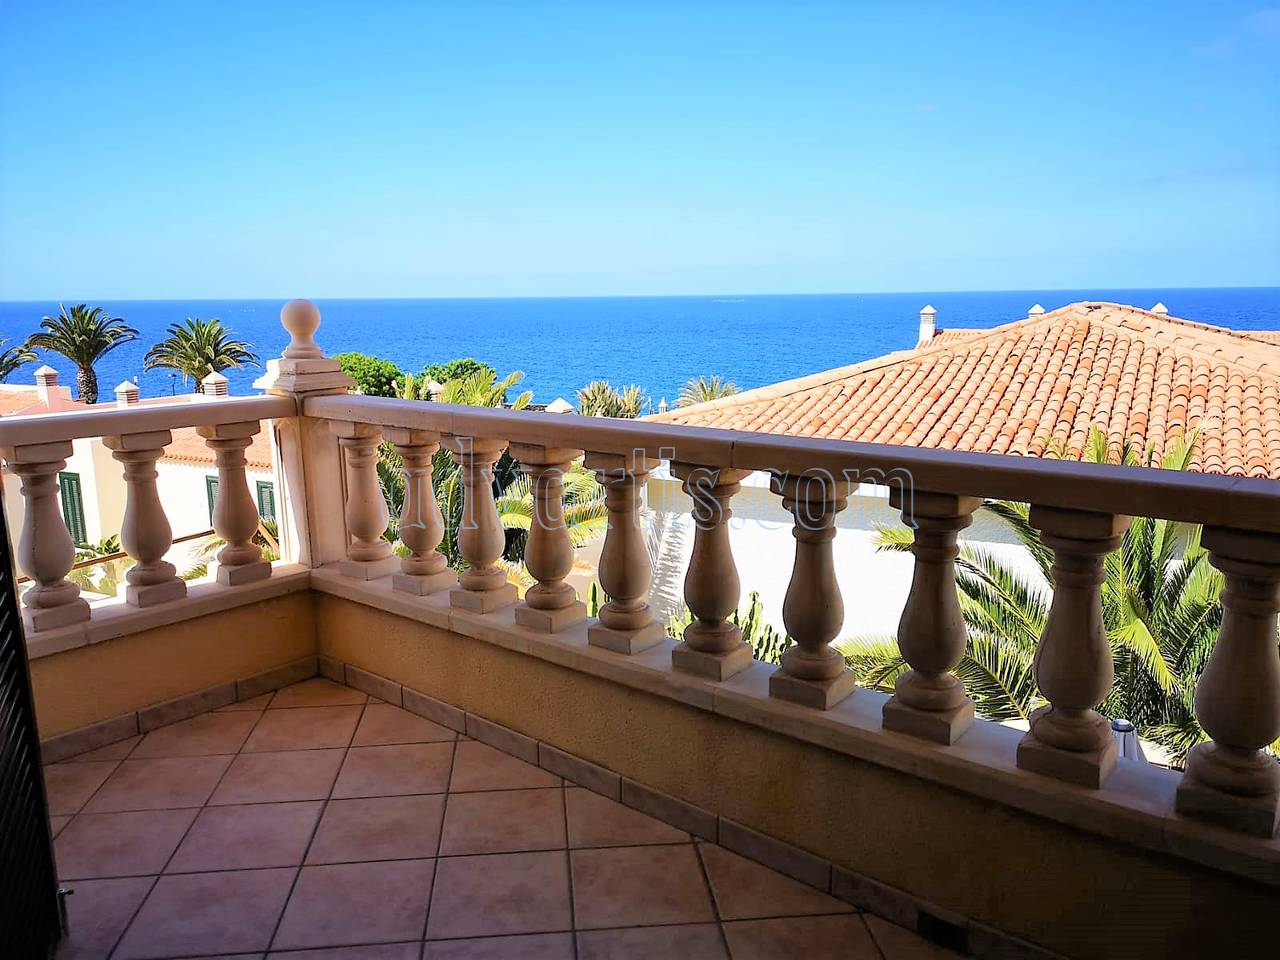 House for sale in Costa del Silencio, Tenerife €350.000